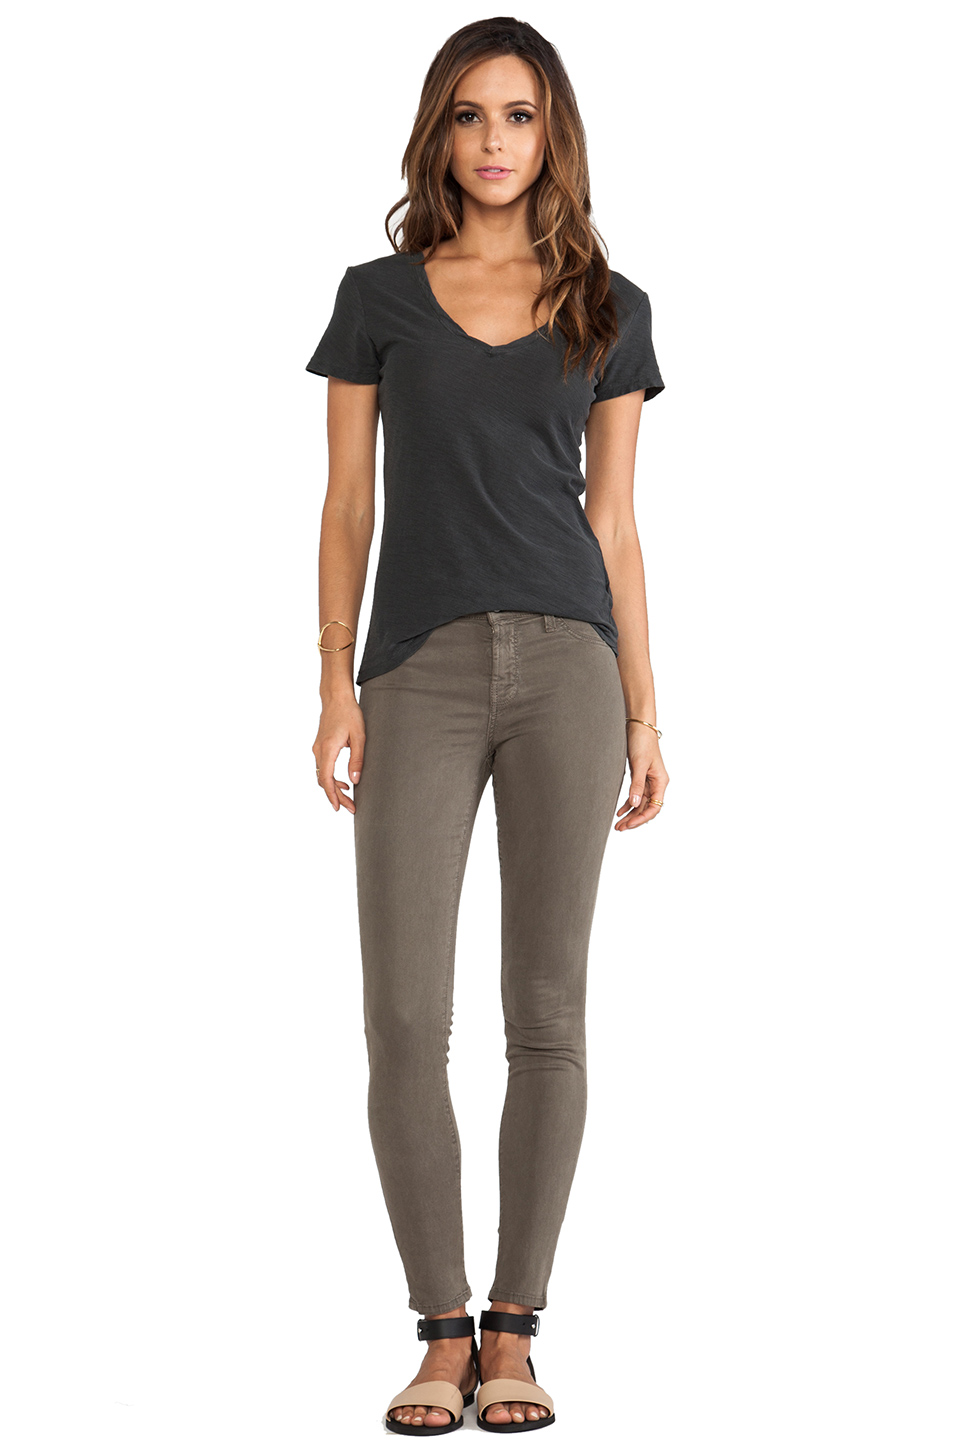 James Perse Casual Tee w/ Reverse Binding in Carbon | REVOLVE